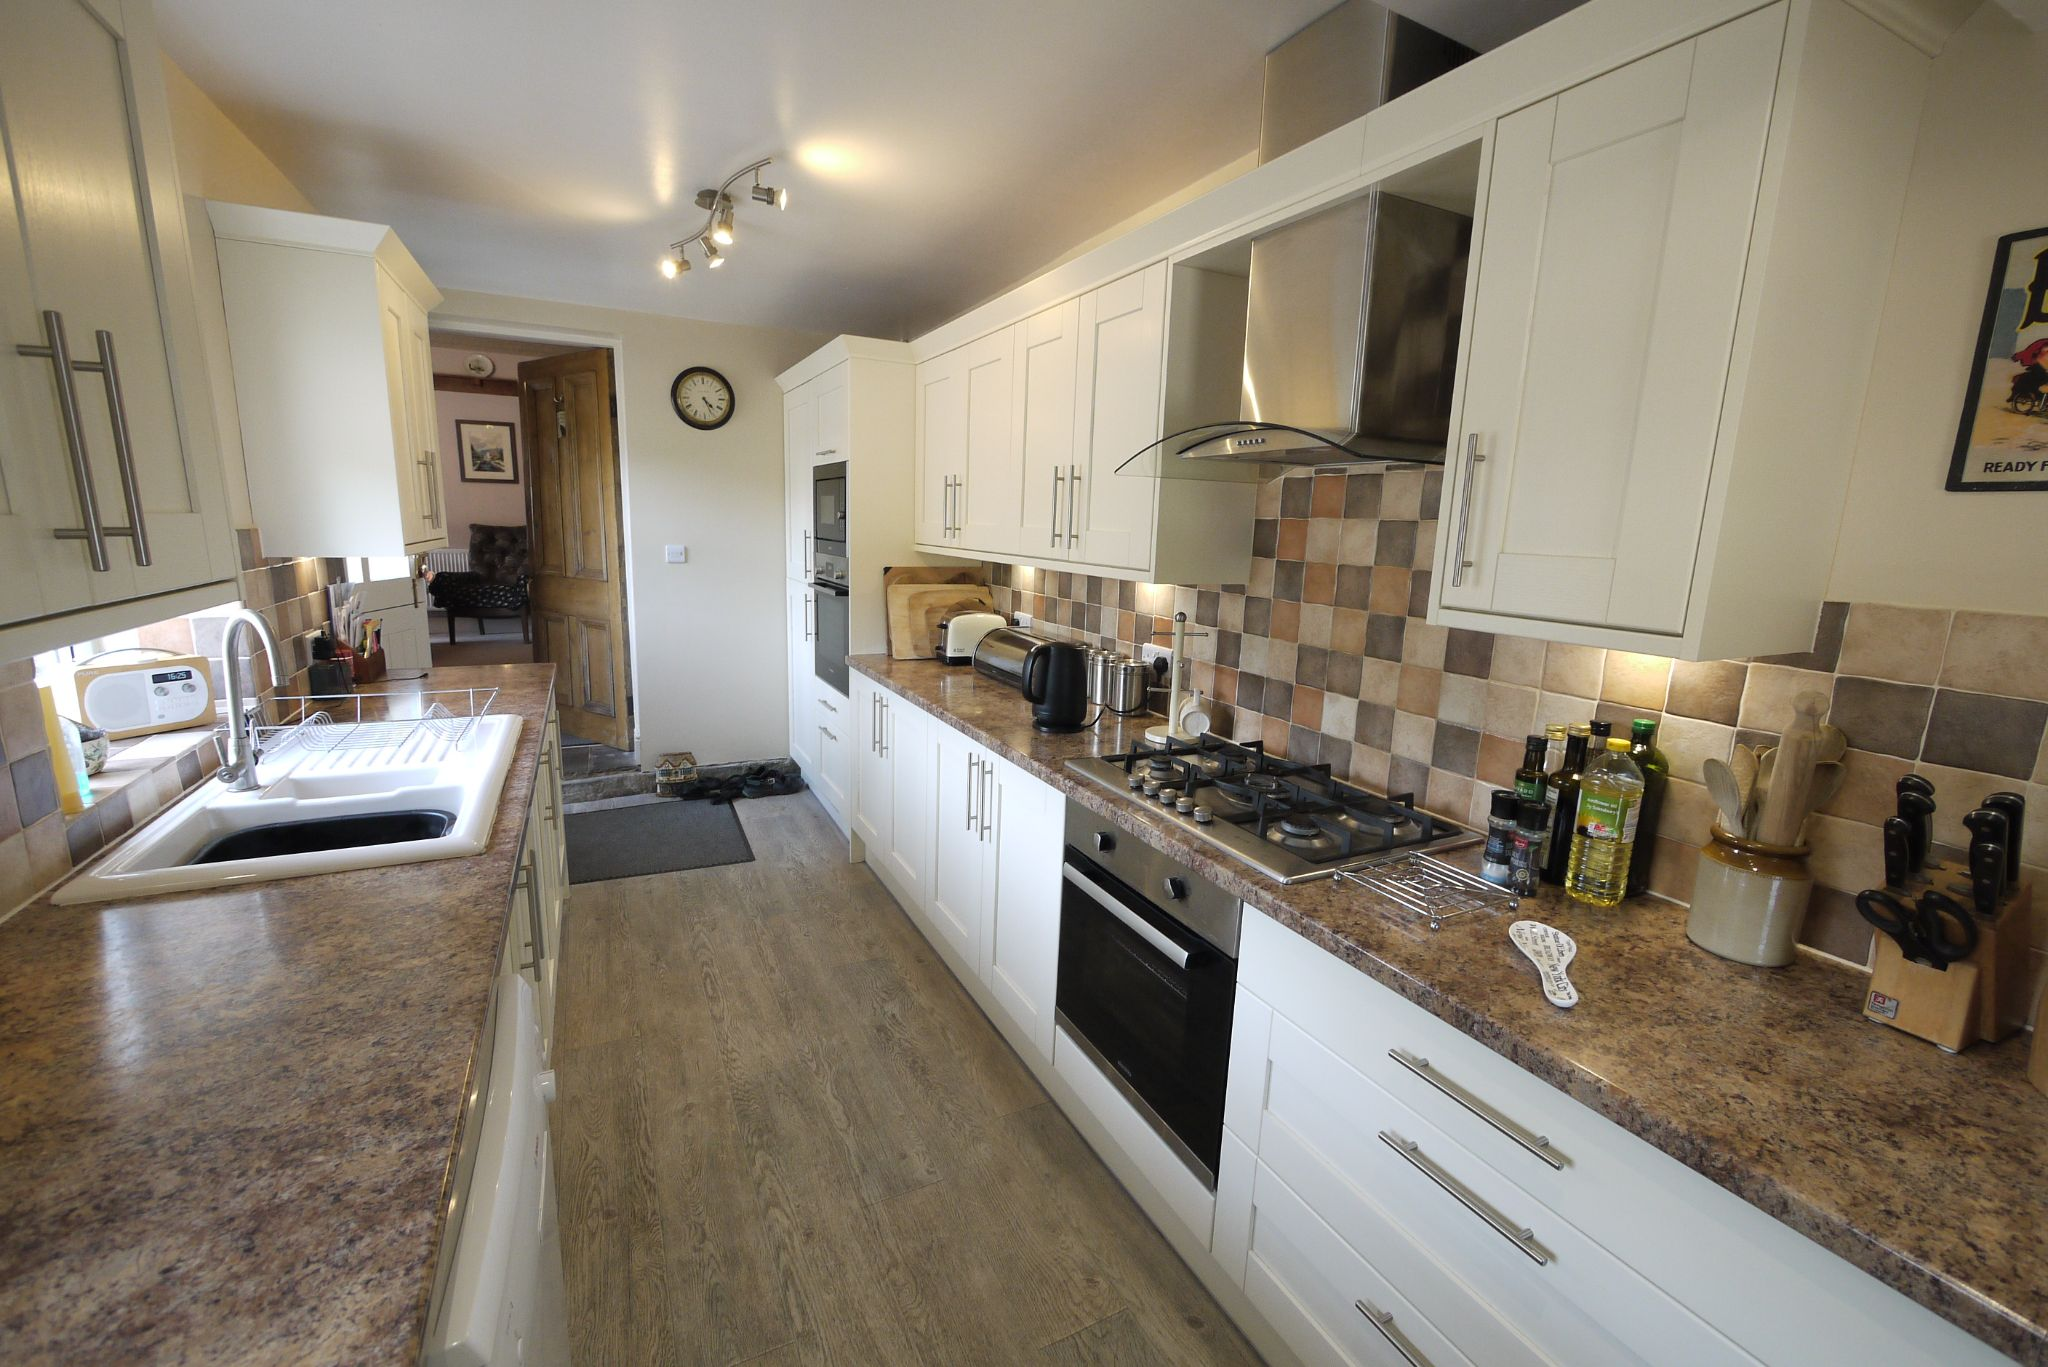 3 bedroom semi-detached house For Sale in Brighouse - Photograph 2.